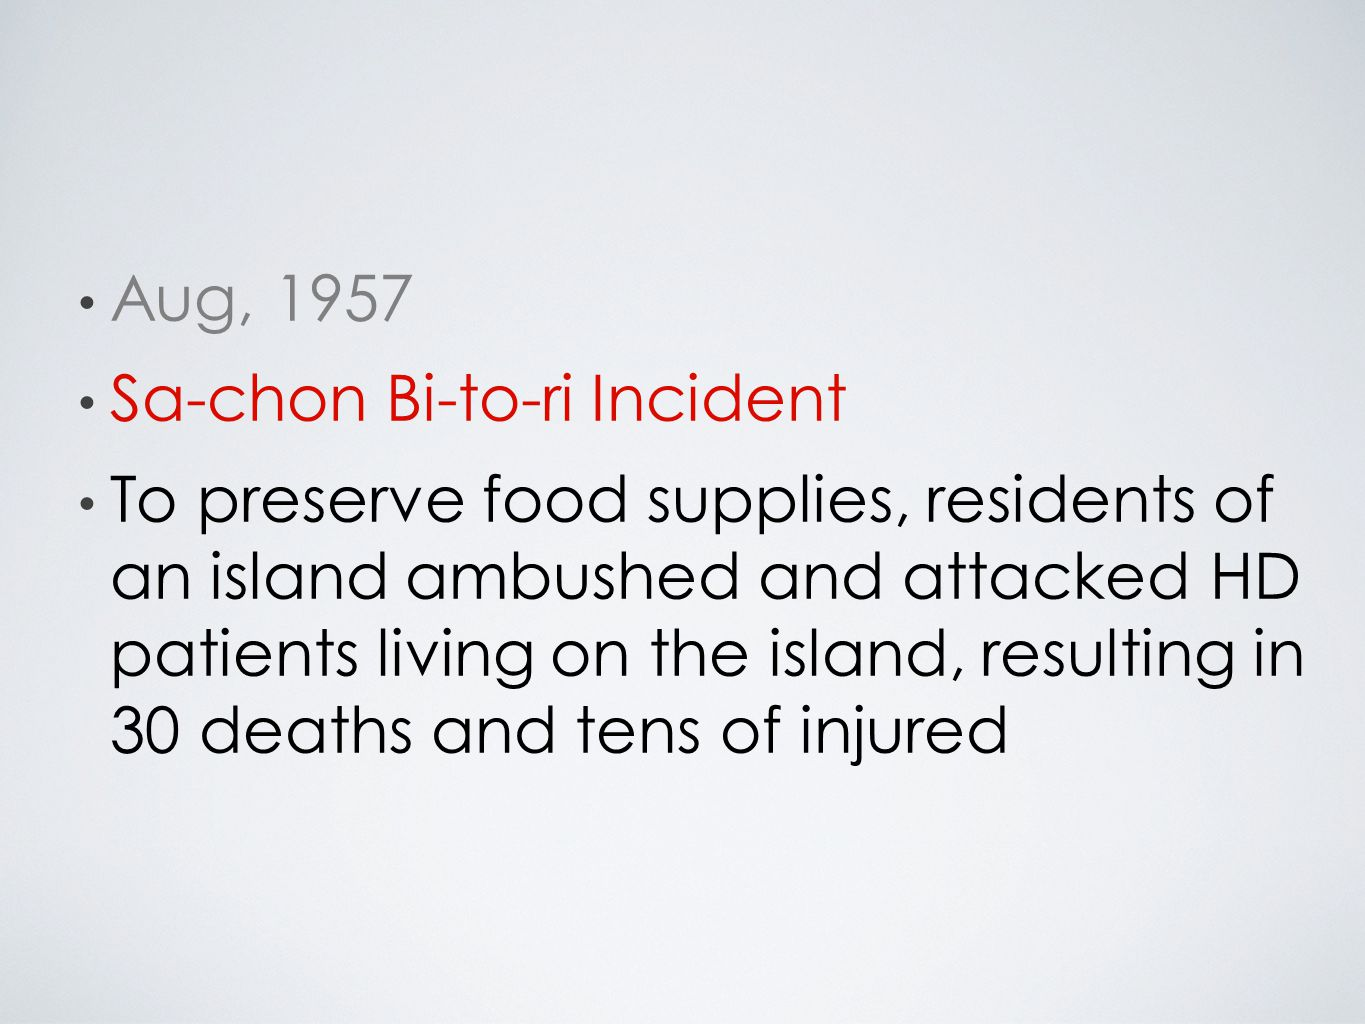 Aug, 1957 Sa-chon Bi-to-ri Incident To preserve food supplies, residents of an island ambushed and attacked HD patients living on the island, resulting in 30 deaths and tens of injured